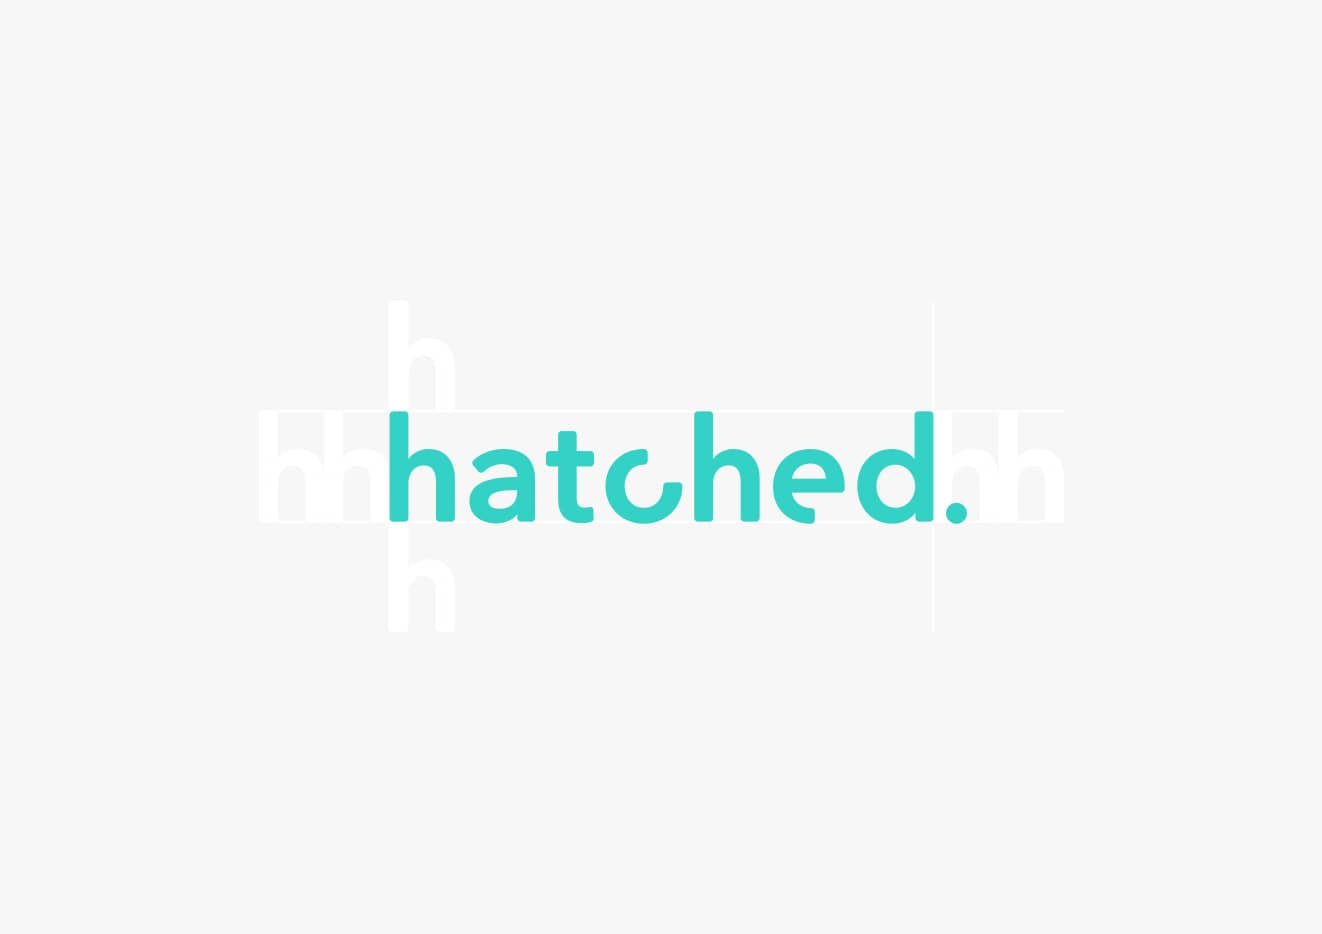 Hatched rebrand clearance